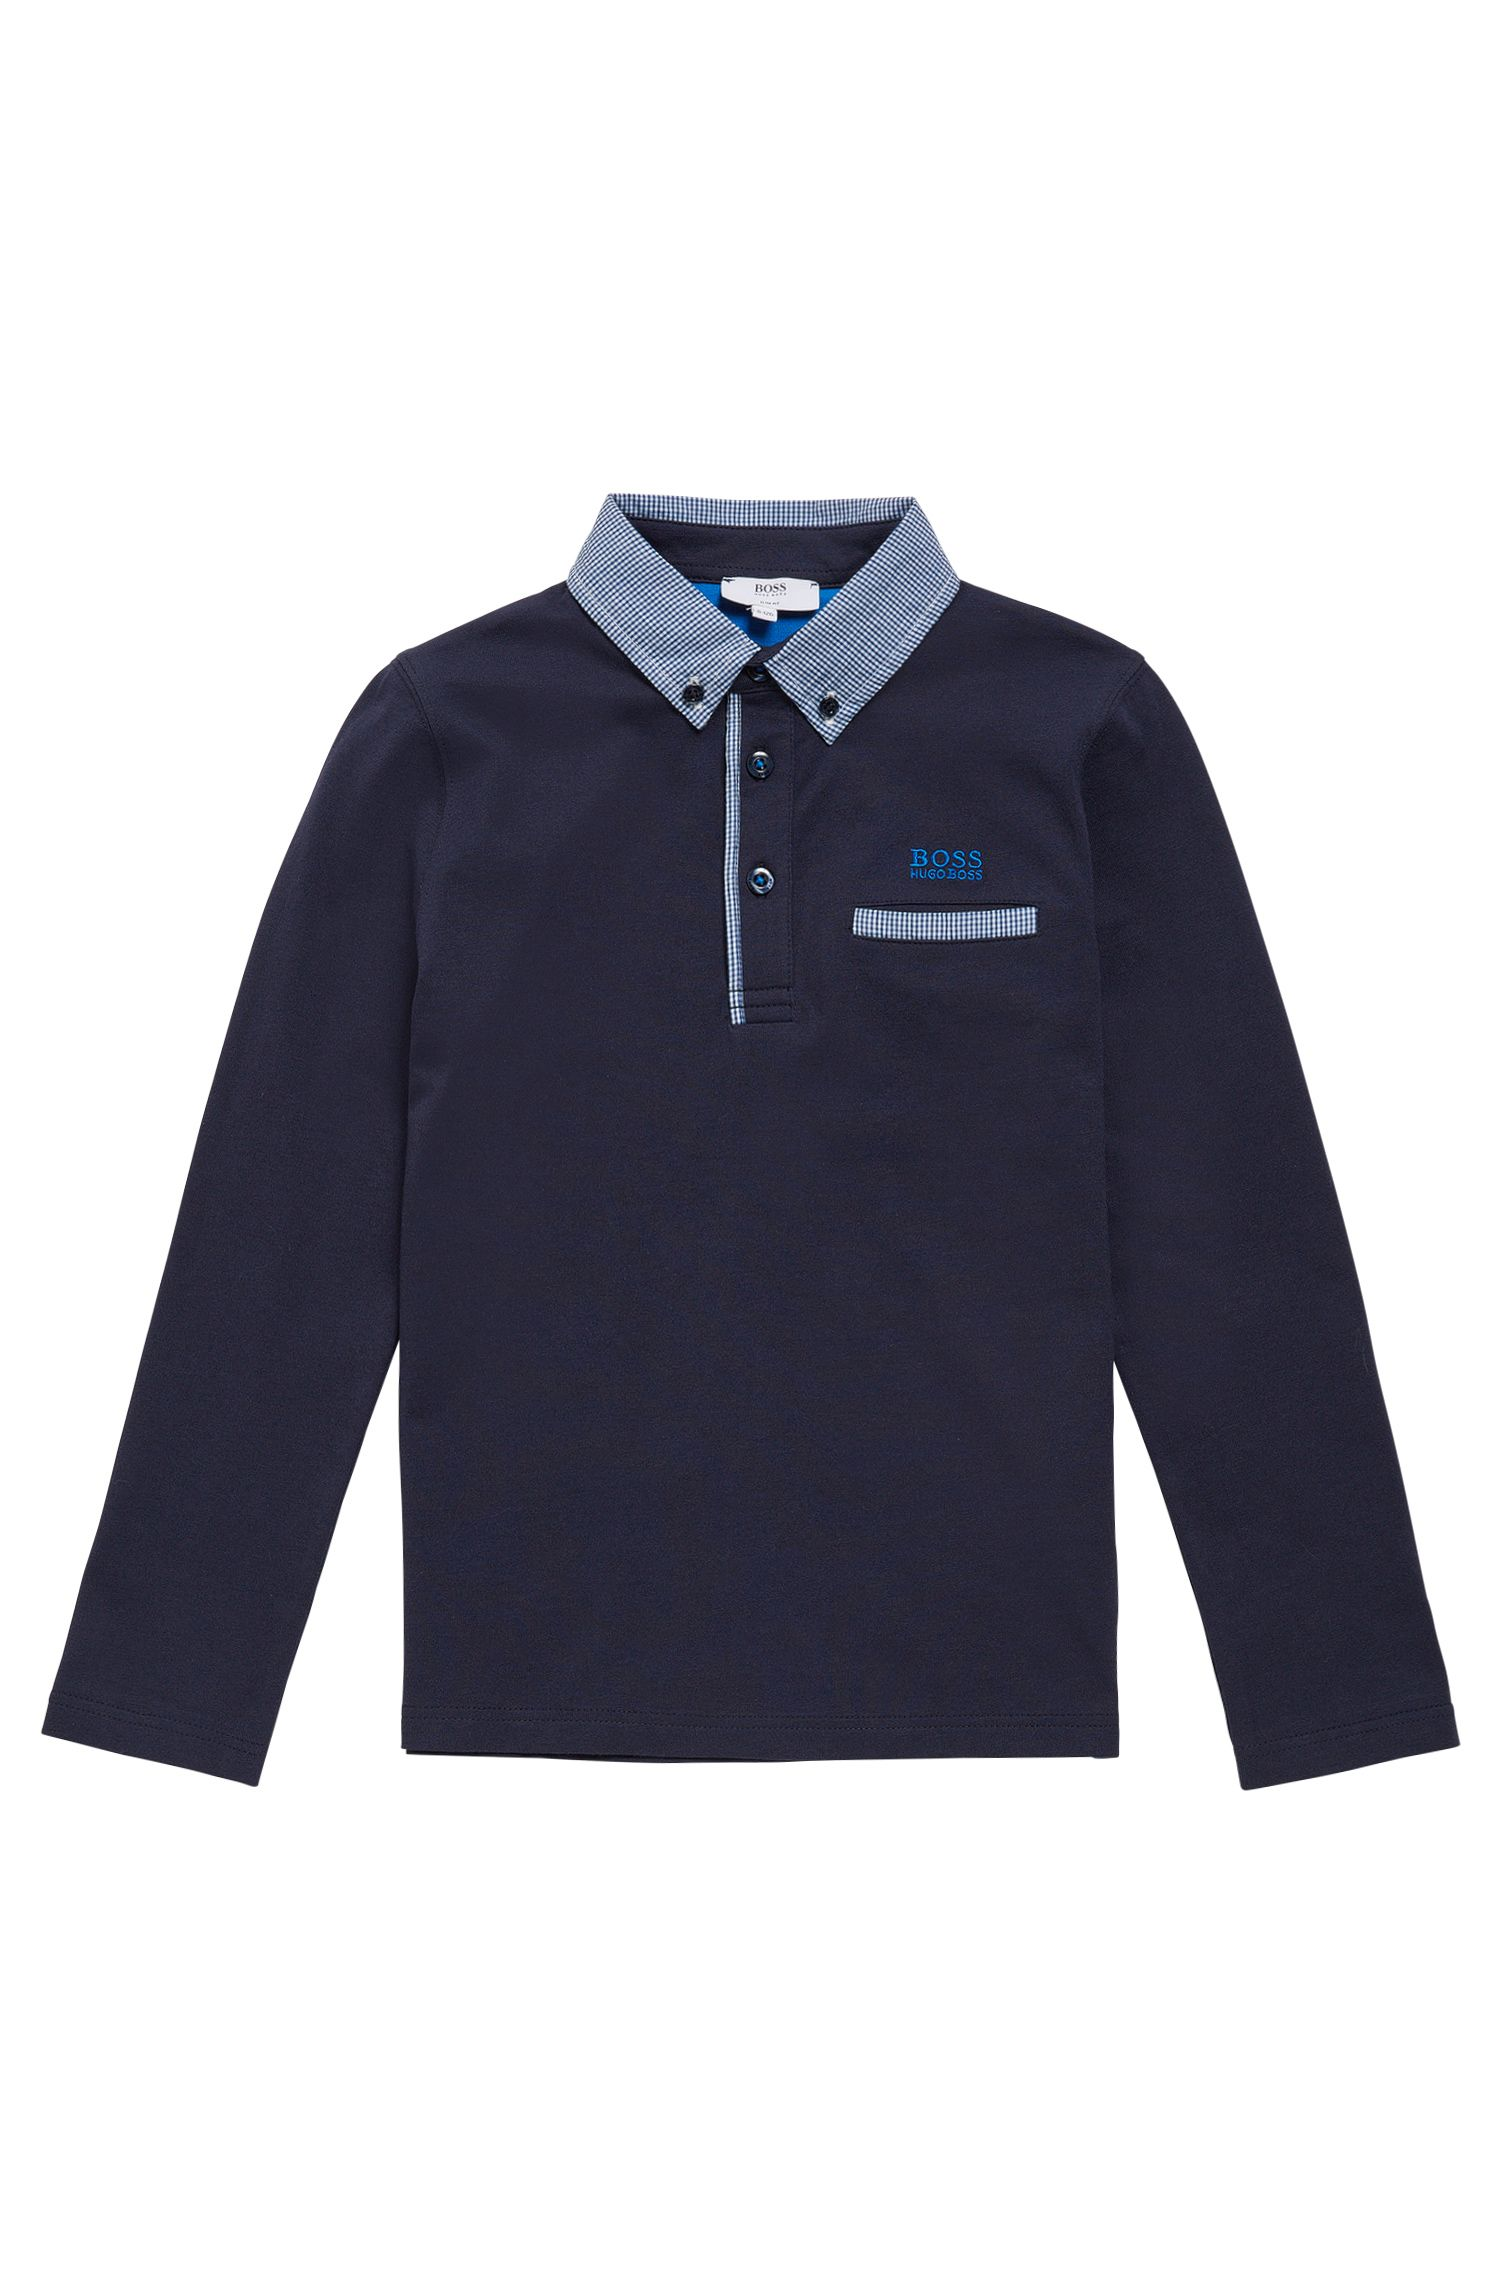 'J25993' | Boys Cotton Polo Shirt, Dark Blue